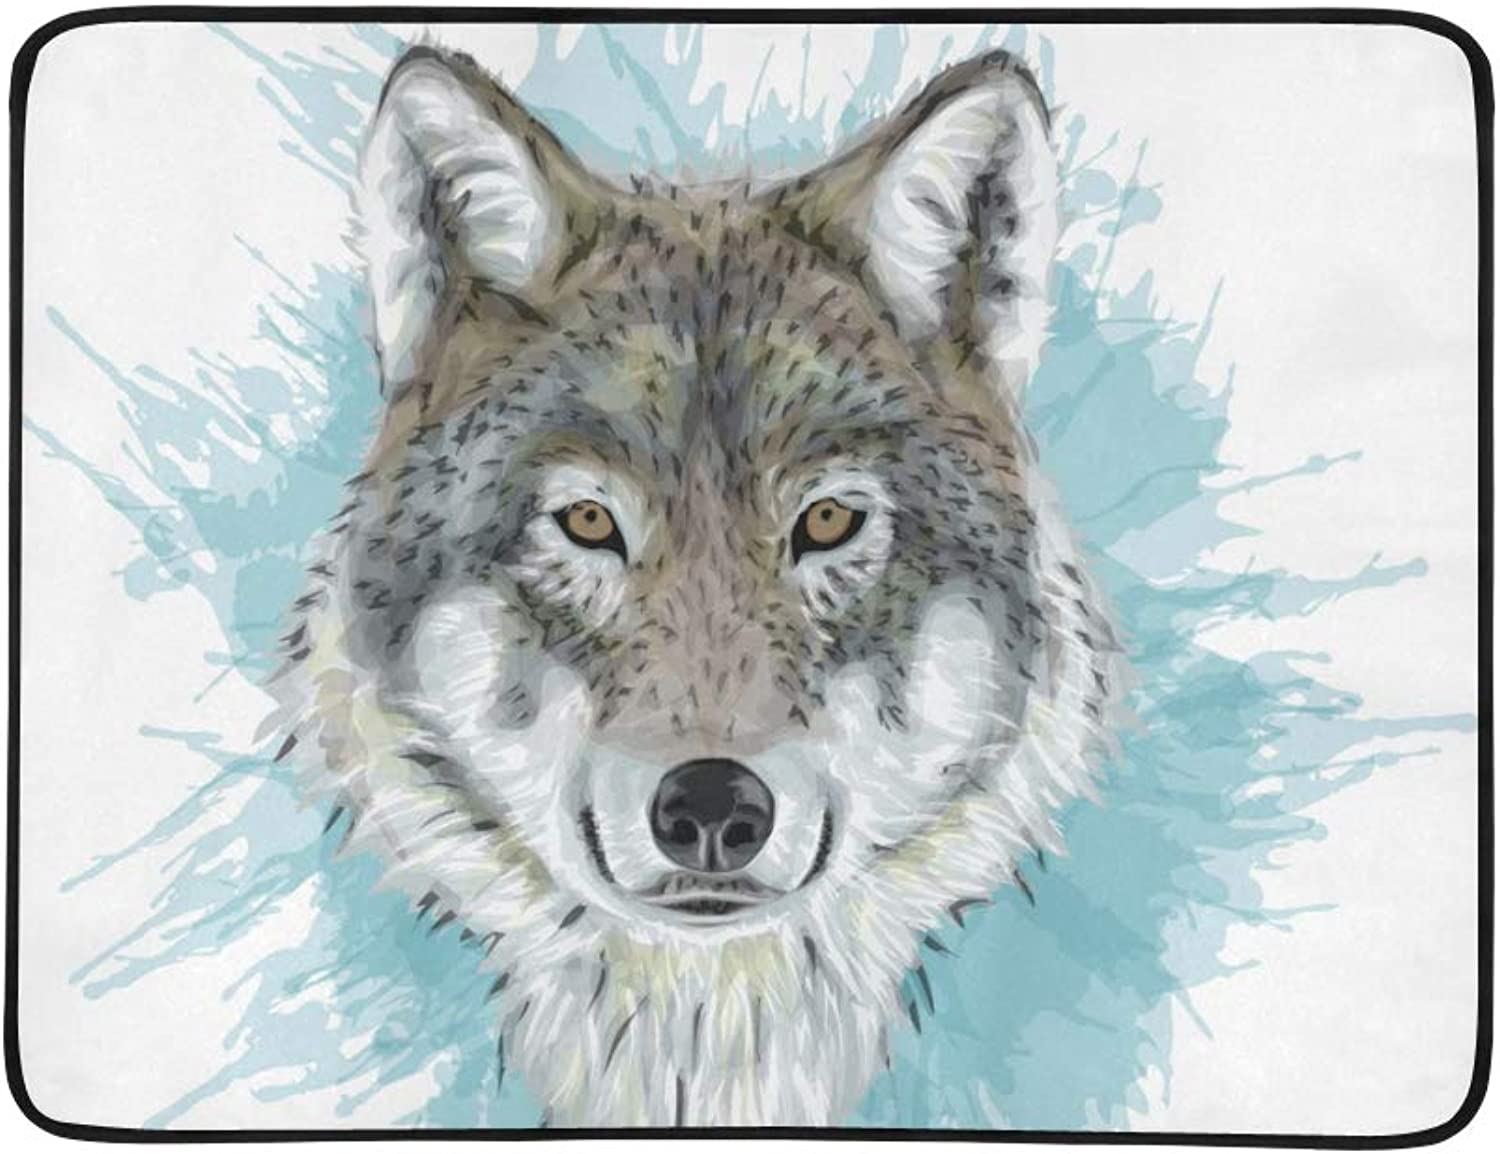 Grey Wolf Portrait Animal Pattern Portable and Foldable Blanket Mat 60x78 Inch Handy Mat for Camping Picnic Beach Indoor Outdoor Travel